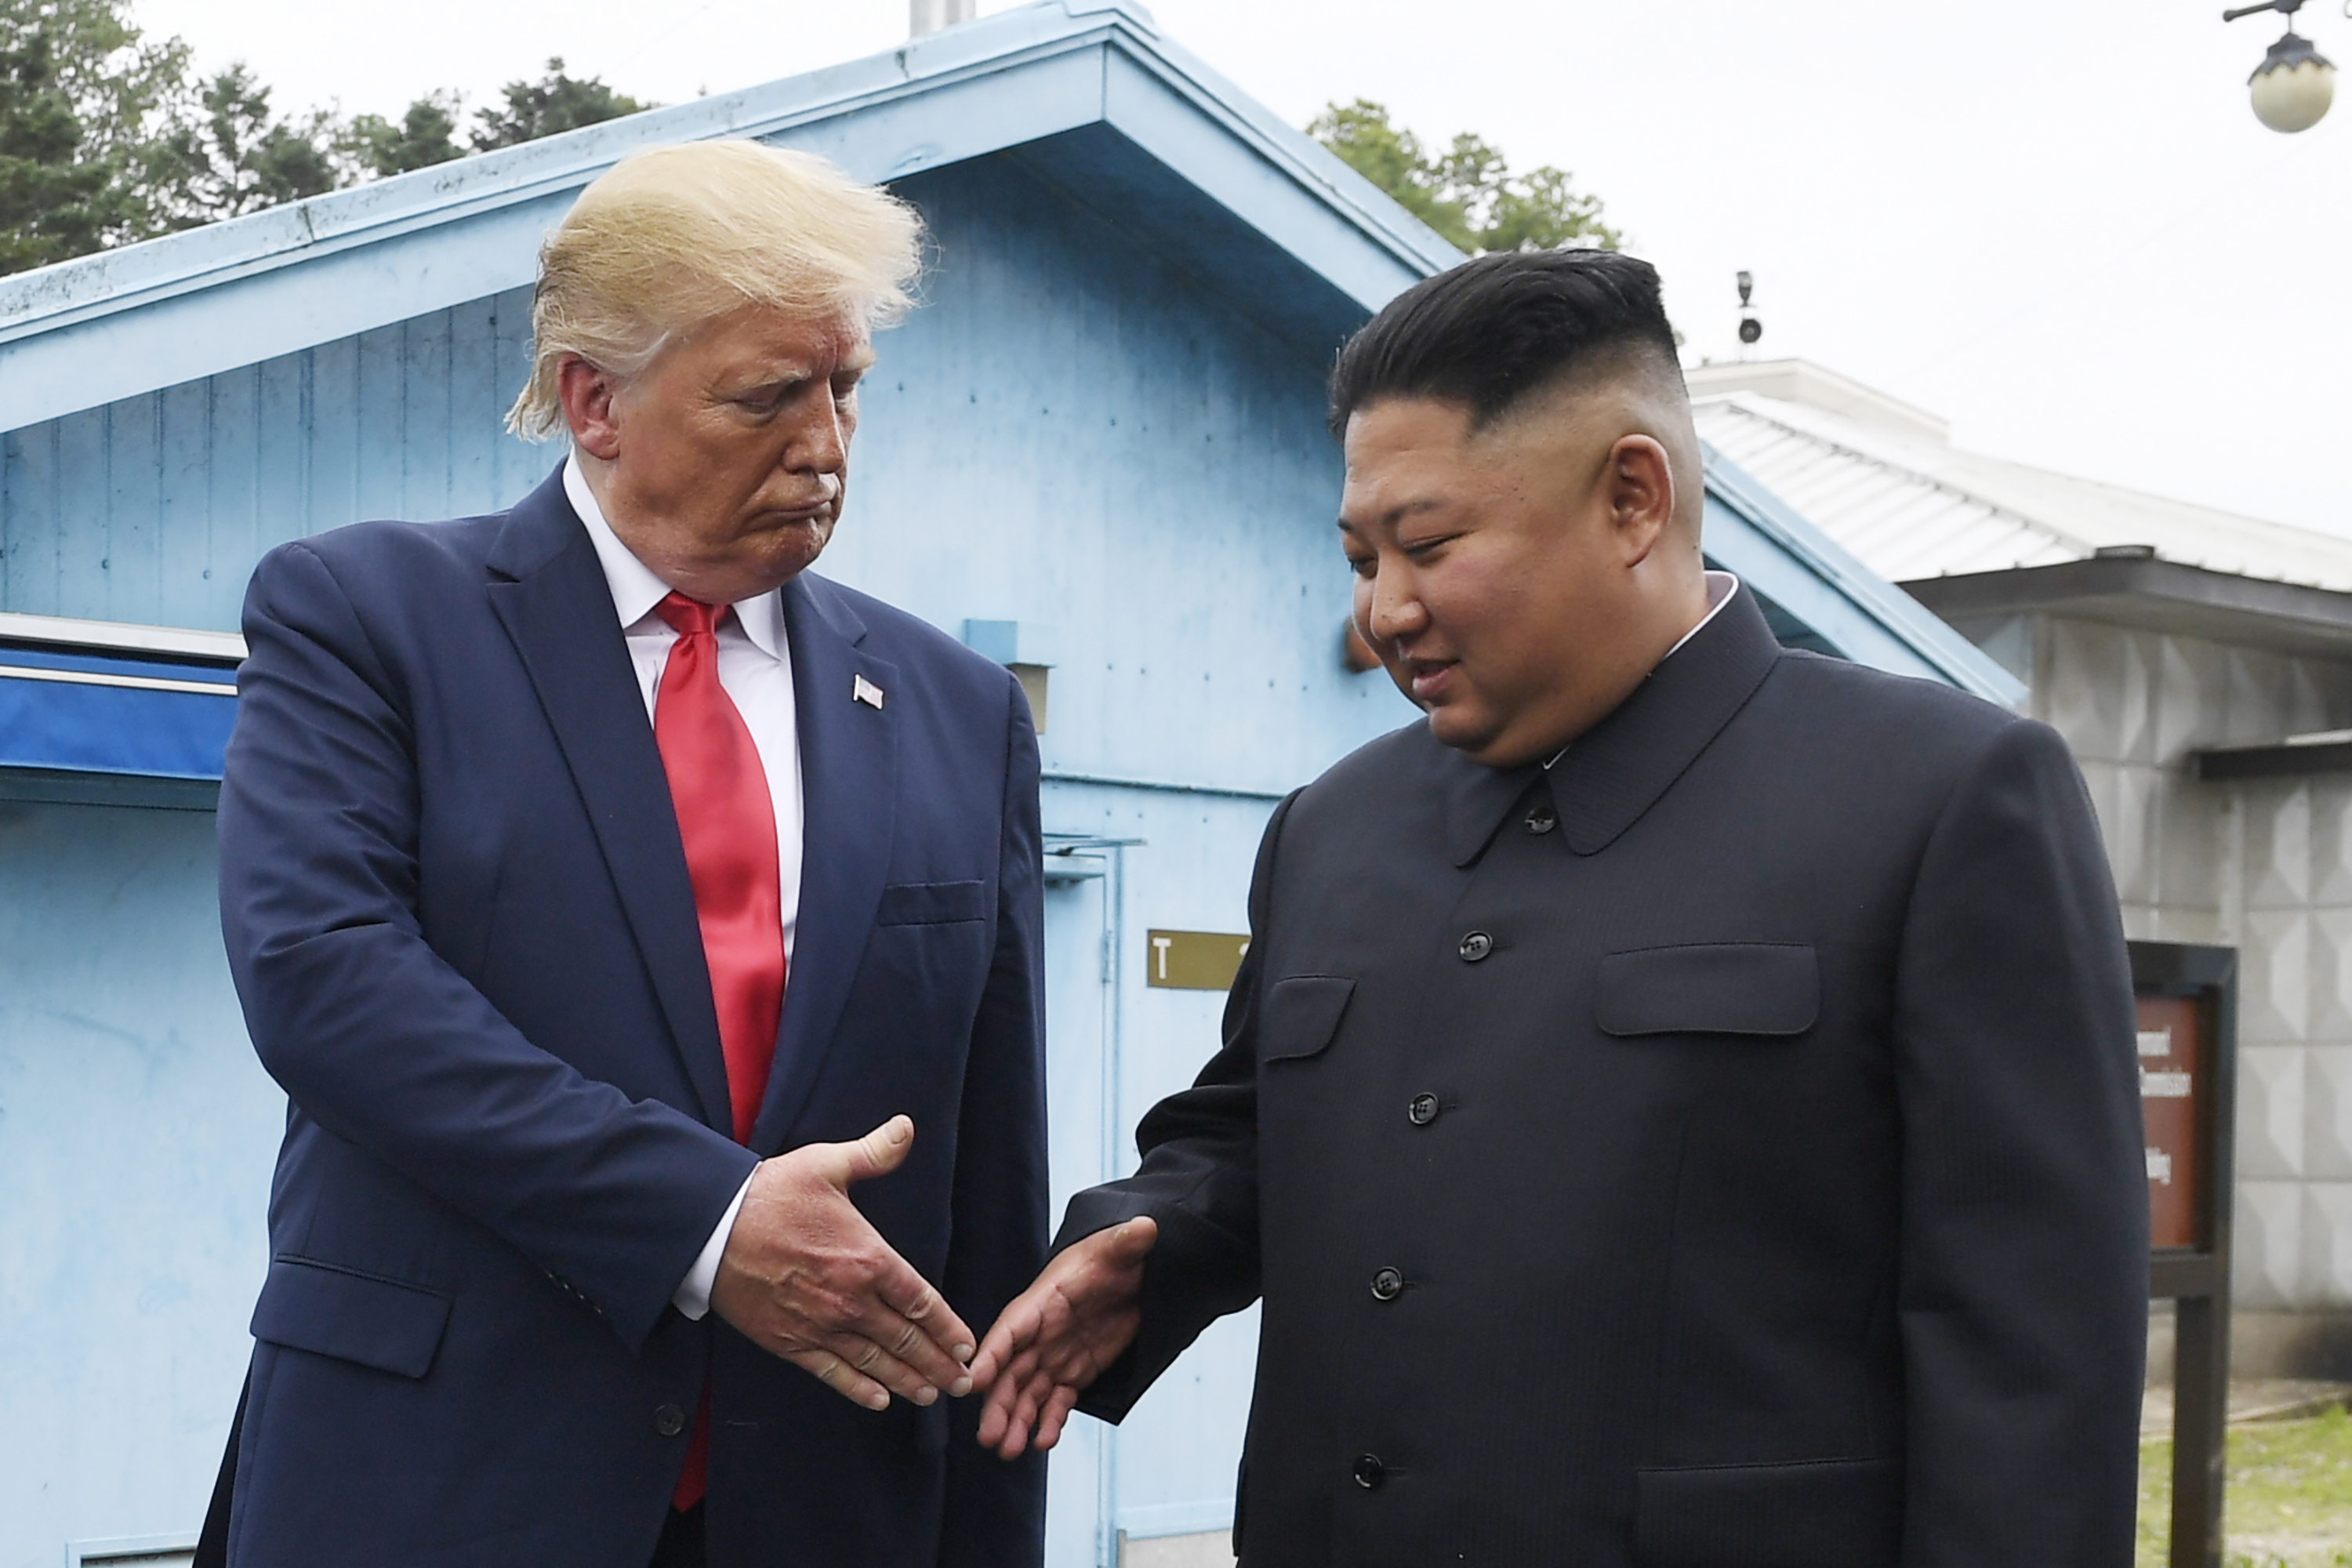 """In this June 30, 2019, file photo, North Korean leader Kim Jong Un, right, and U.S. President Donald Trump prepare to shake hands at the border village of Panmunjom in the Demilitarized Zone, South Korea. On Wednesday, Nov. 13, 2019, North Korea's supreme decision-making institution has lashed out at planned U.S.-South Korean drills and warned that the United States will face """"bigger threat and harsh suffering"""" if it ignores North Korean leader Kim Jong Un's end-of-year deadline to salvage the nuclear diplomacy."""